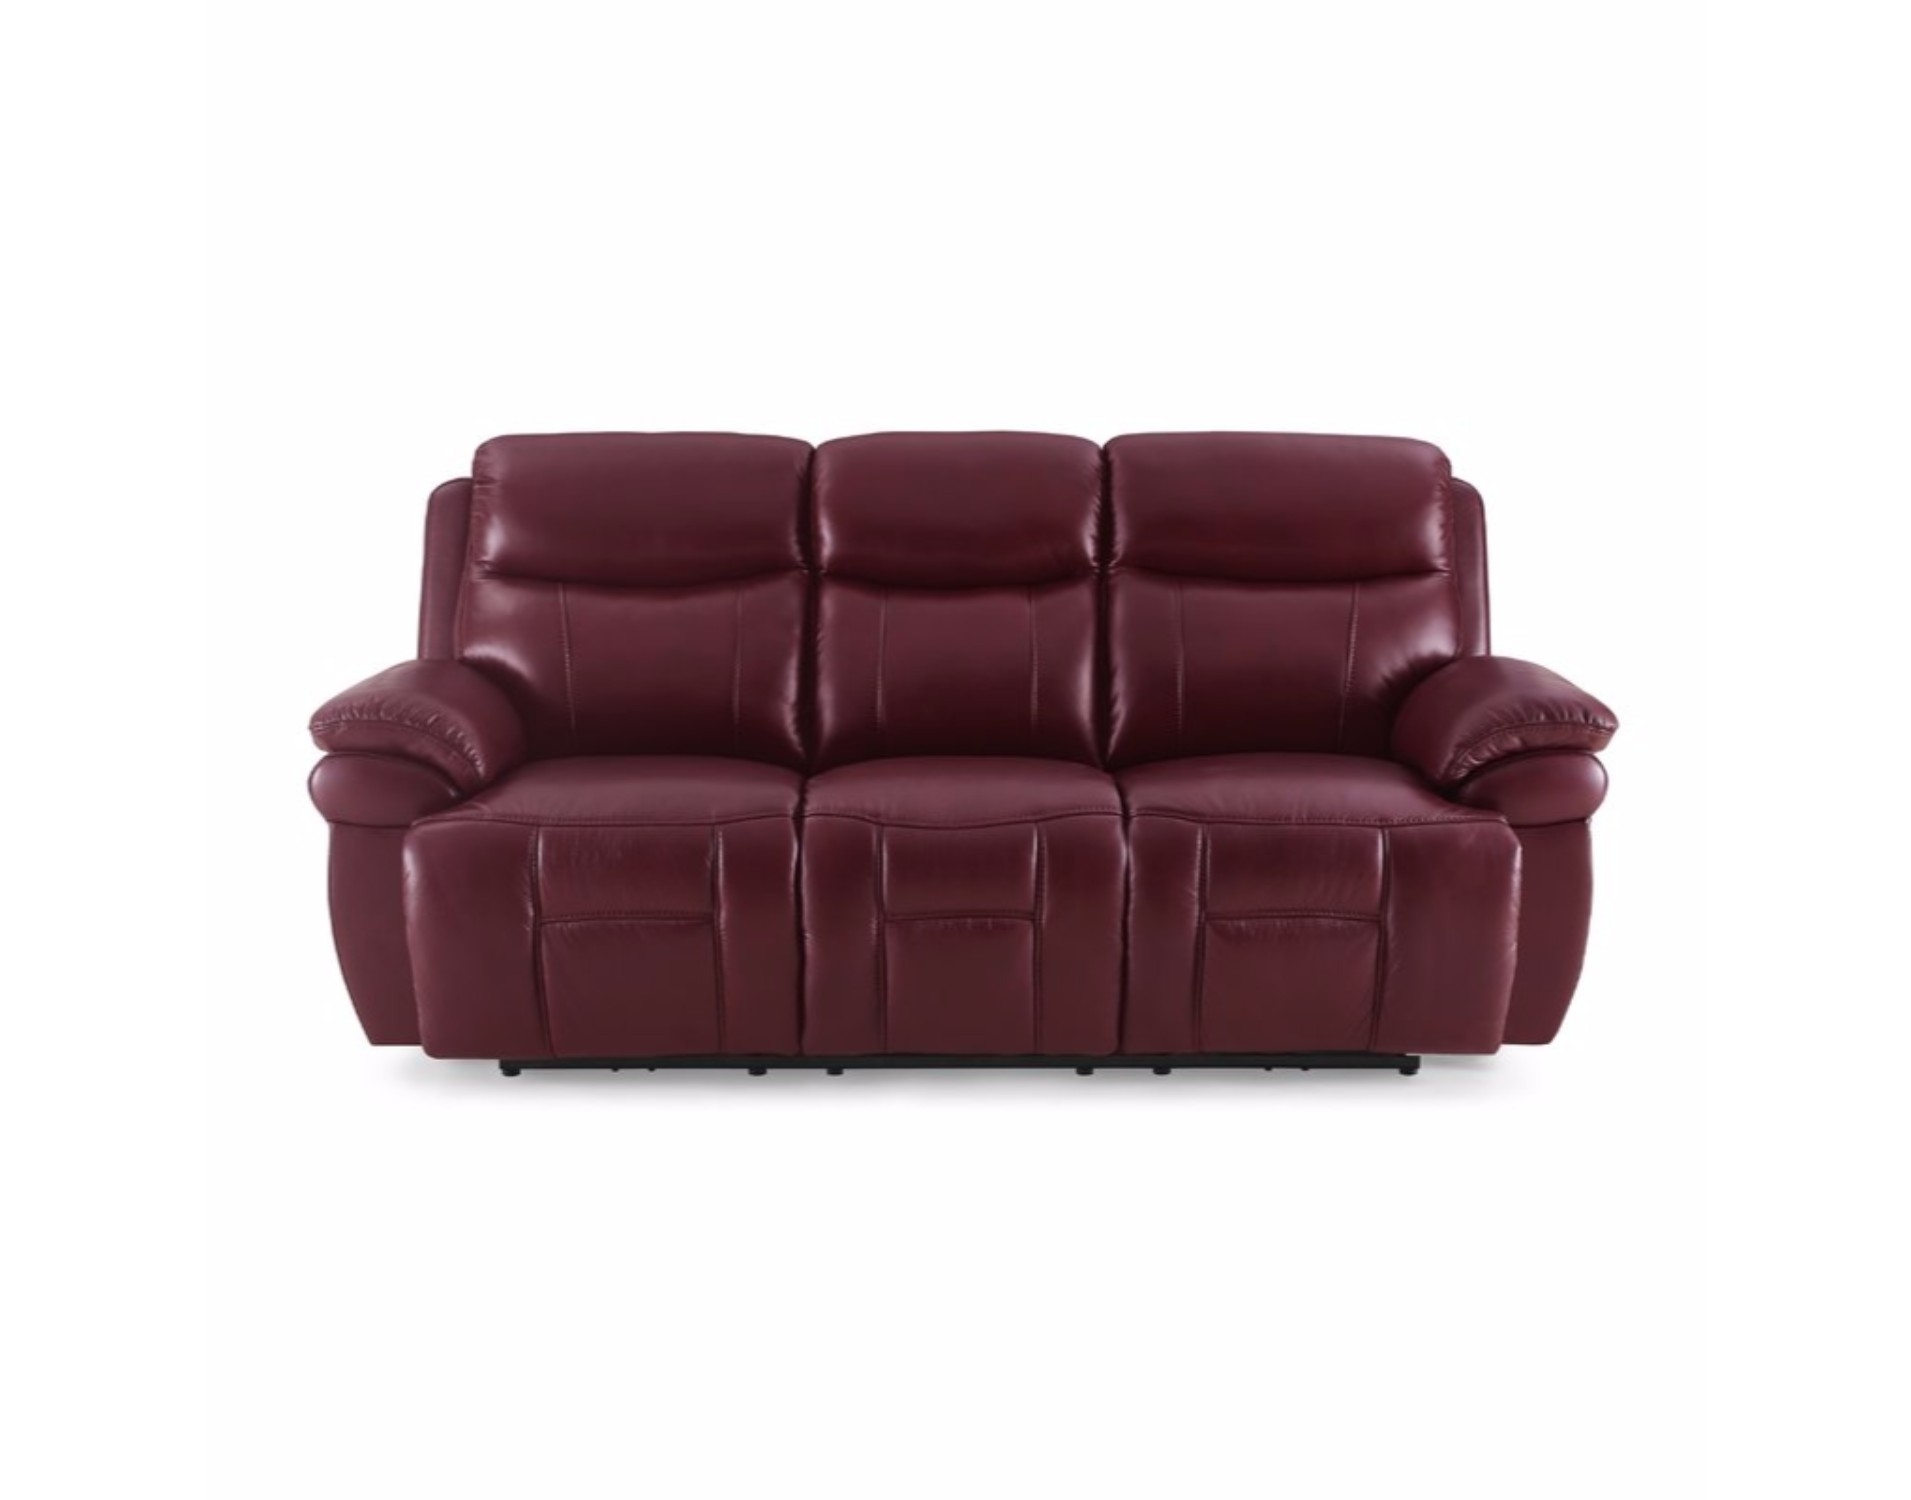 Power Reclining Sofa Vs Manual | Baci Living Room for Calder Grey 6 Piece Manual Reclining Sectionals (Image 22 of 30)